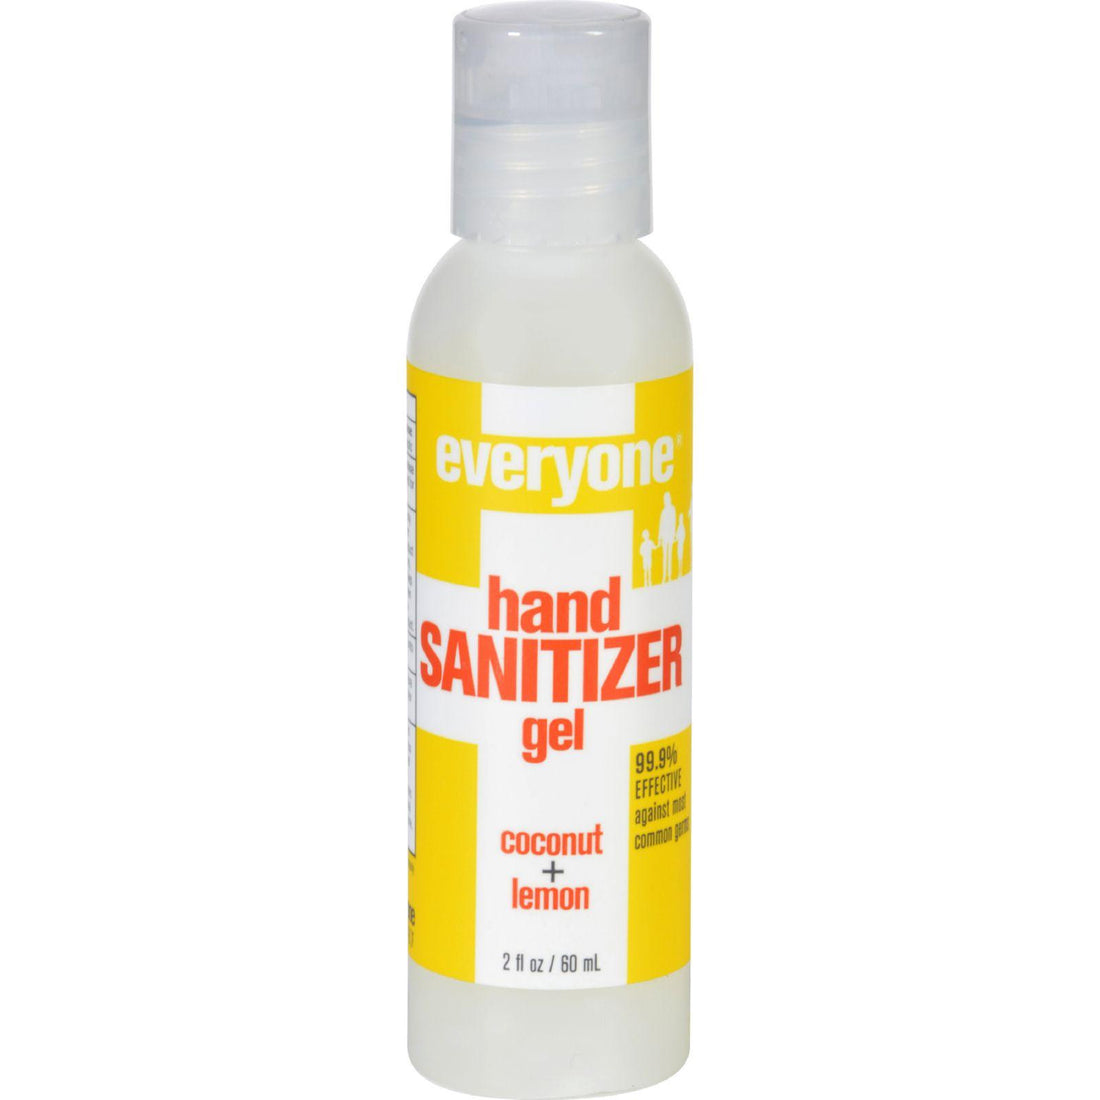 Mother Mantis: Eo Products Hand Sanitizer Gel - Everyone - Cocnt Lmn - Dsp - 2 Oz - 1 Case Eo Products